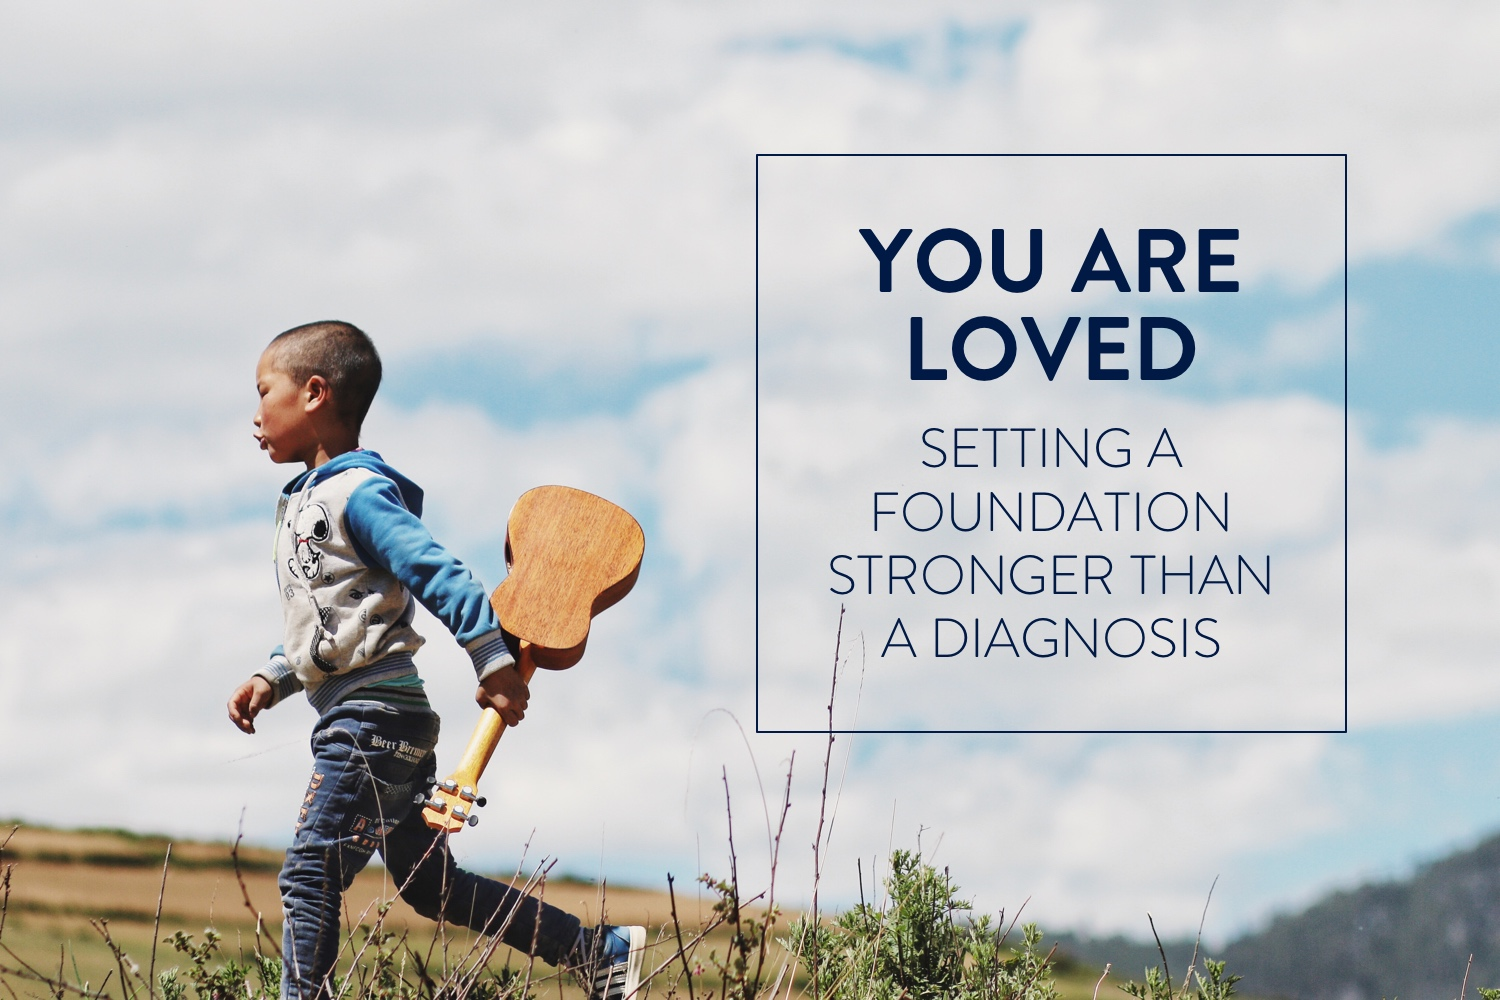 You Are Loved: Setting a Foundation Stronger than a Diagnosis